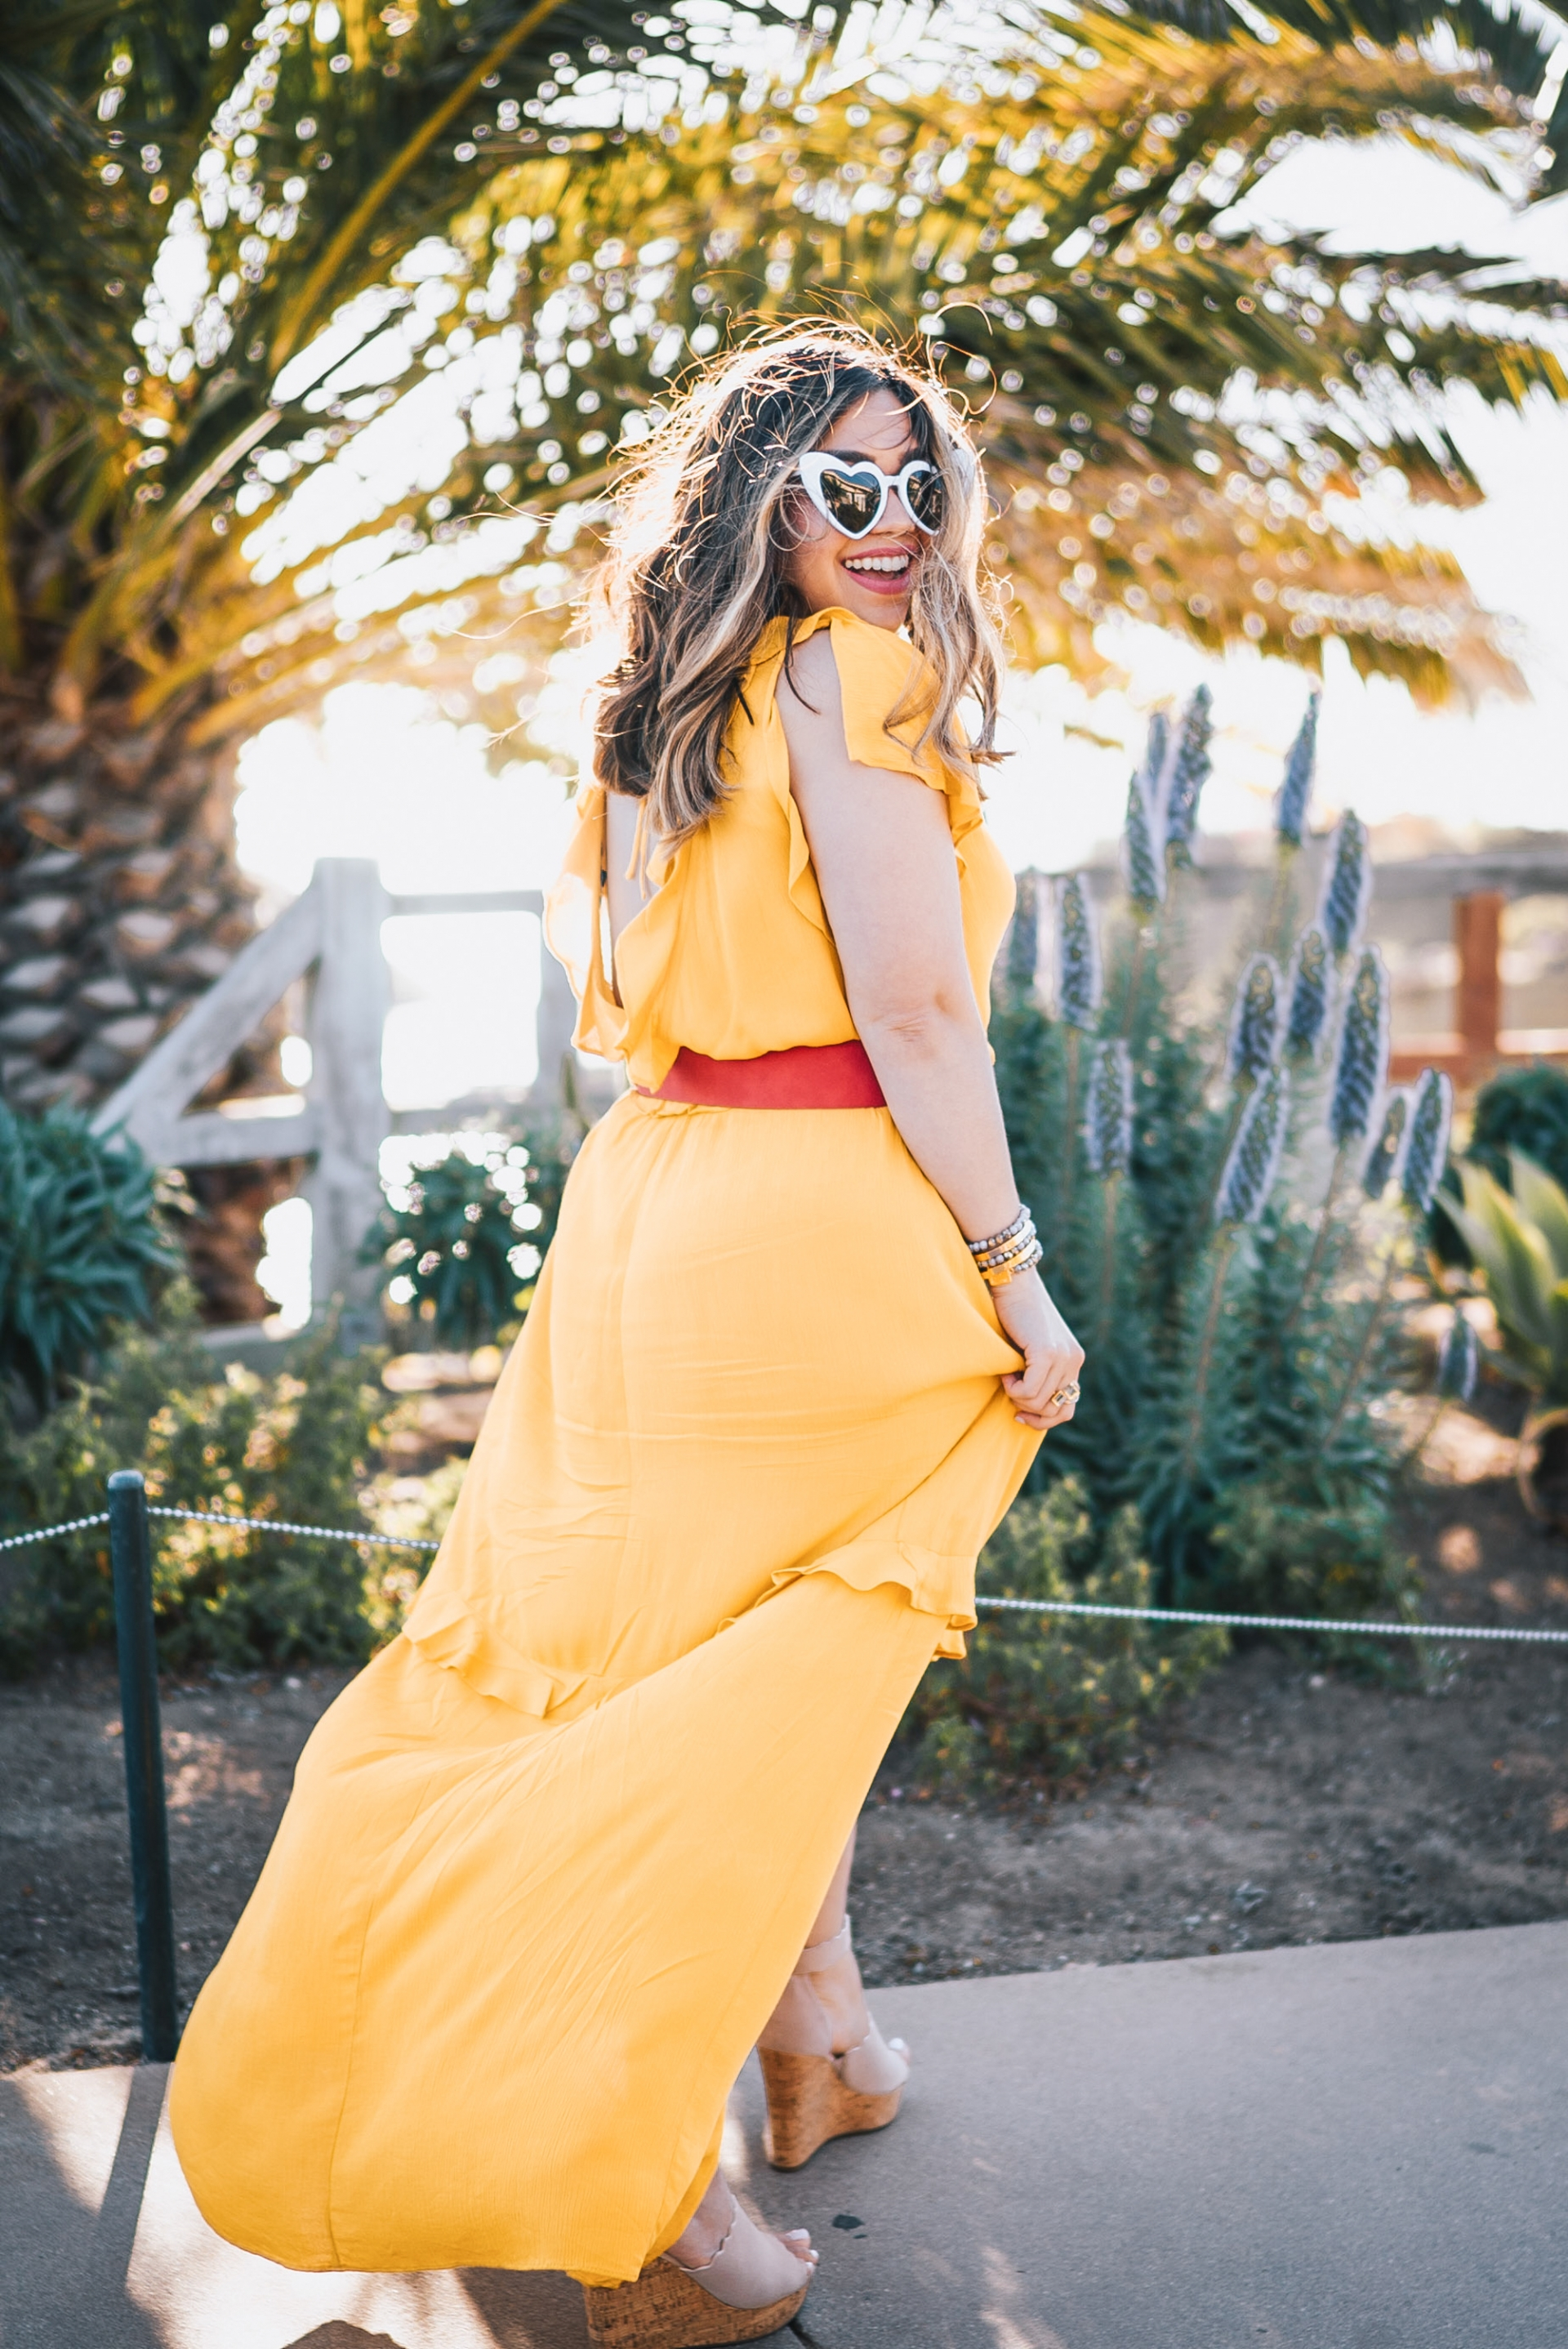 Express Your Rules Mustard Yellow Flutter Sleeve Ruffle Front Cut-out Maxi Dress Red Covered Rectangle Buckle Belt Marc Fisher Espadrilles Wedges Heart Shape Saint Laurent Dupe Sunglasses